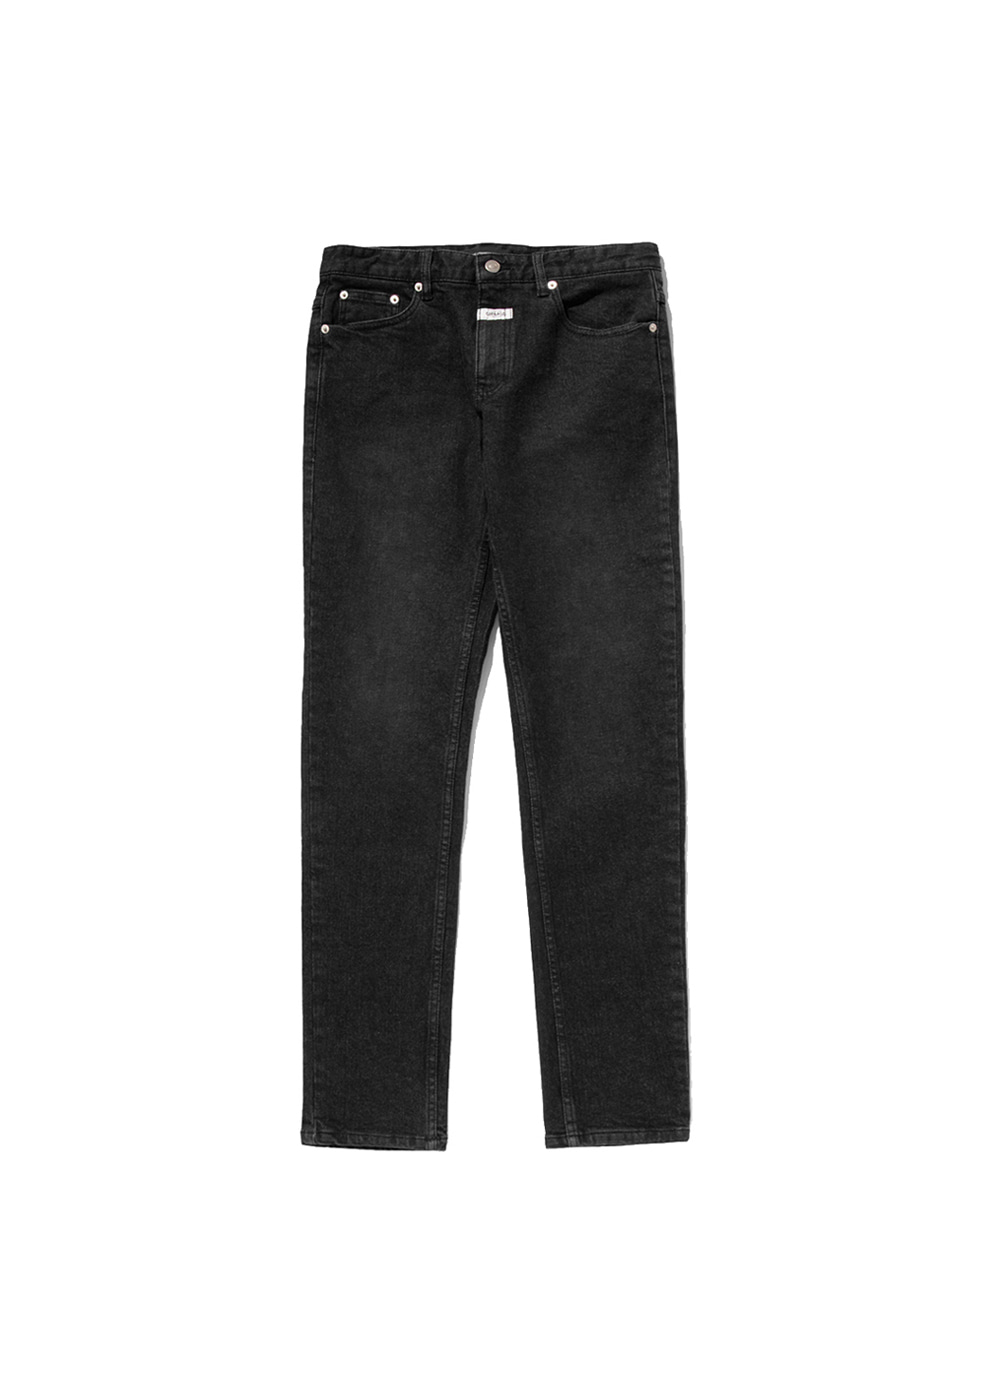 MFG ROLL POCKET JEANS (MEN) stone black